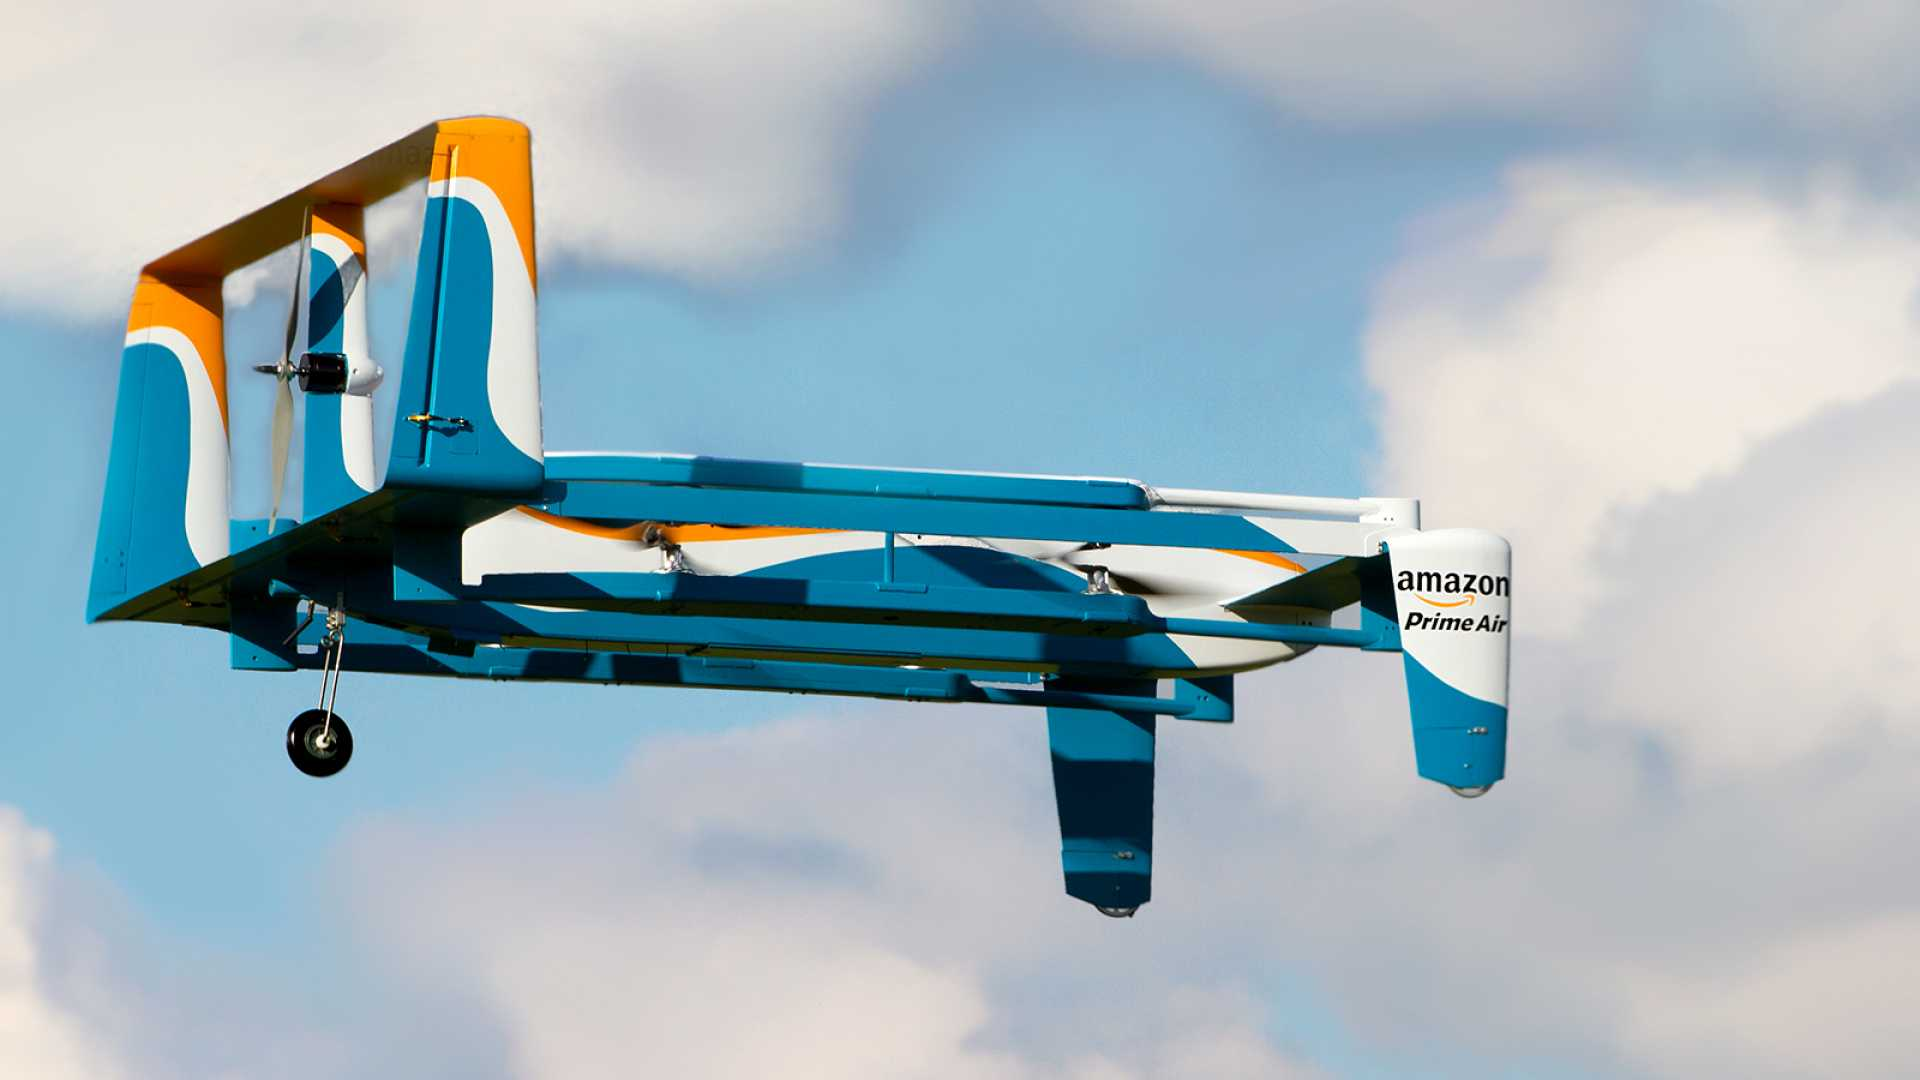 Amazon Has Spent Nearly $10 MillionLobbying for Drone Delivery